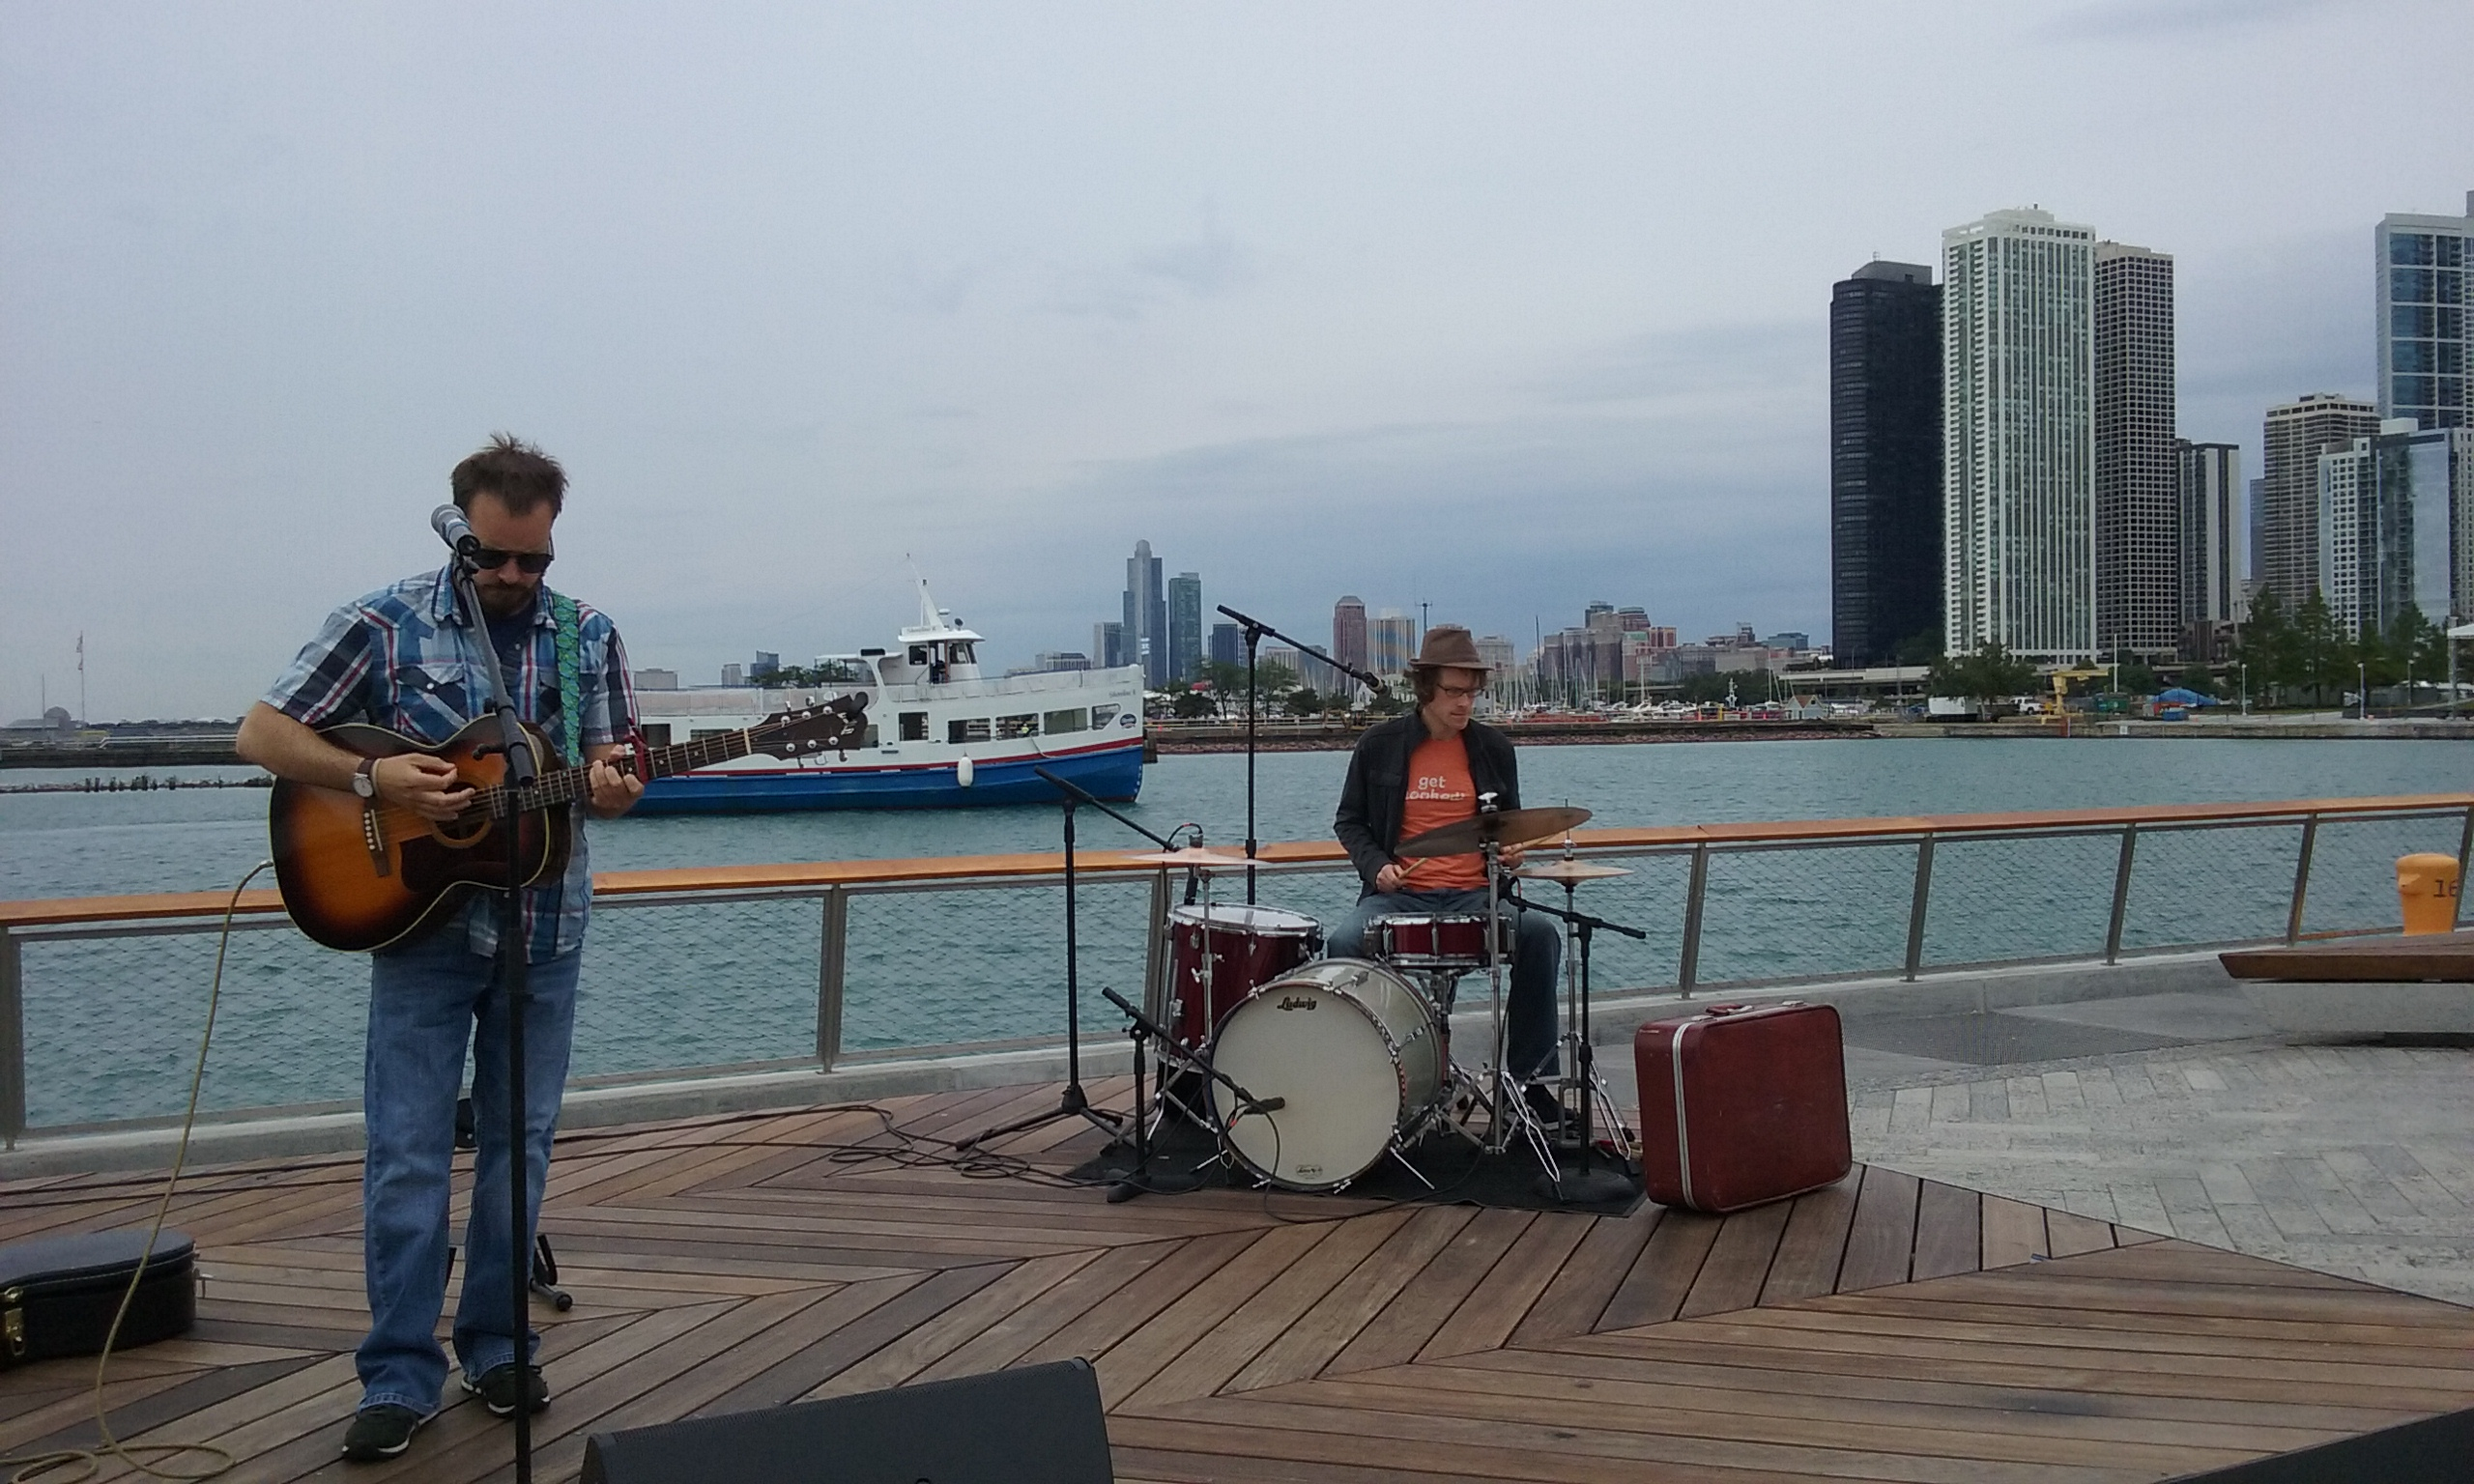 Navy Pier Performance